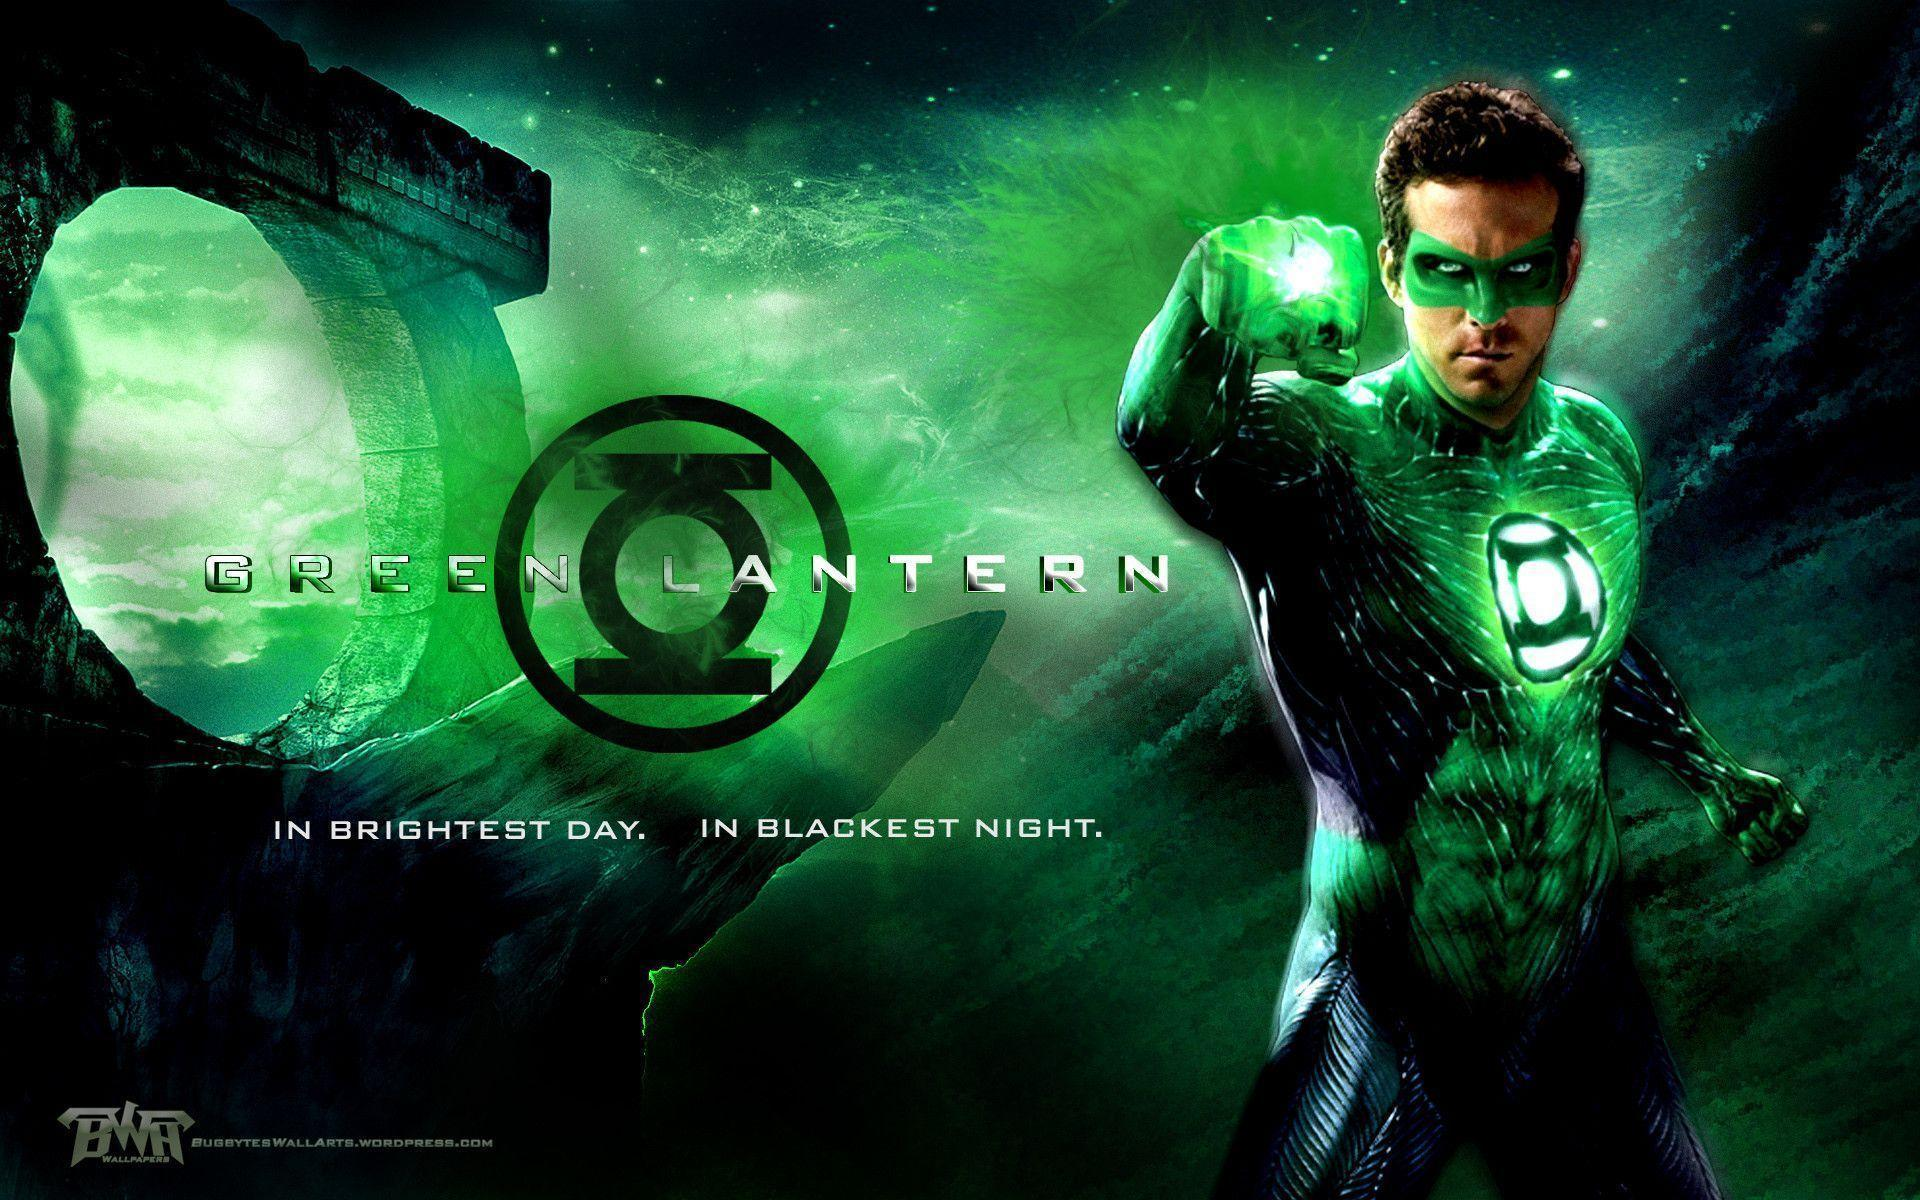 Green Lantern Movie Wallpapers 9 44742 Image HD Wallpapers